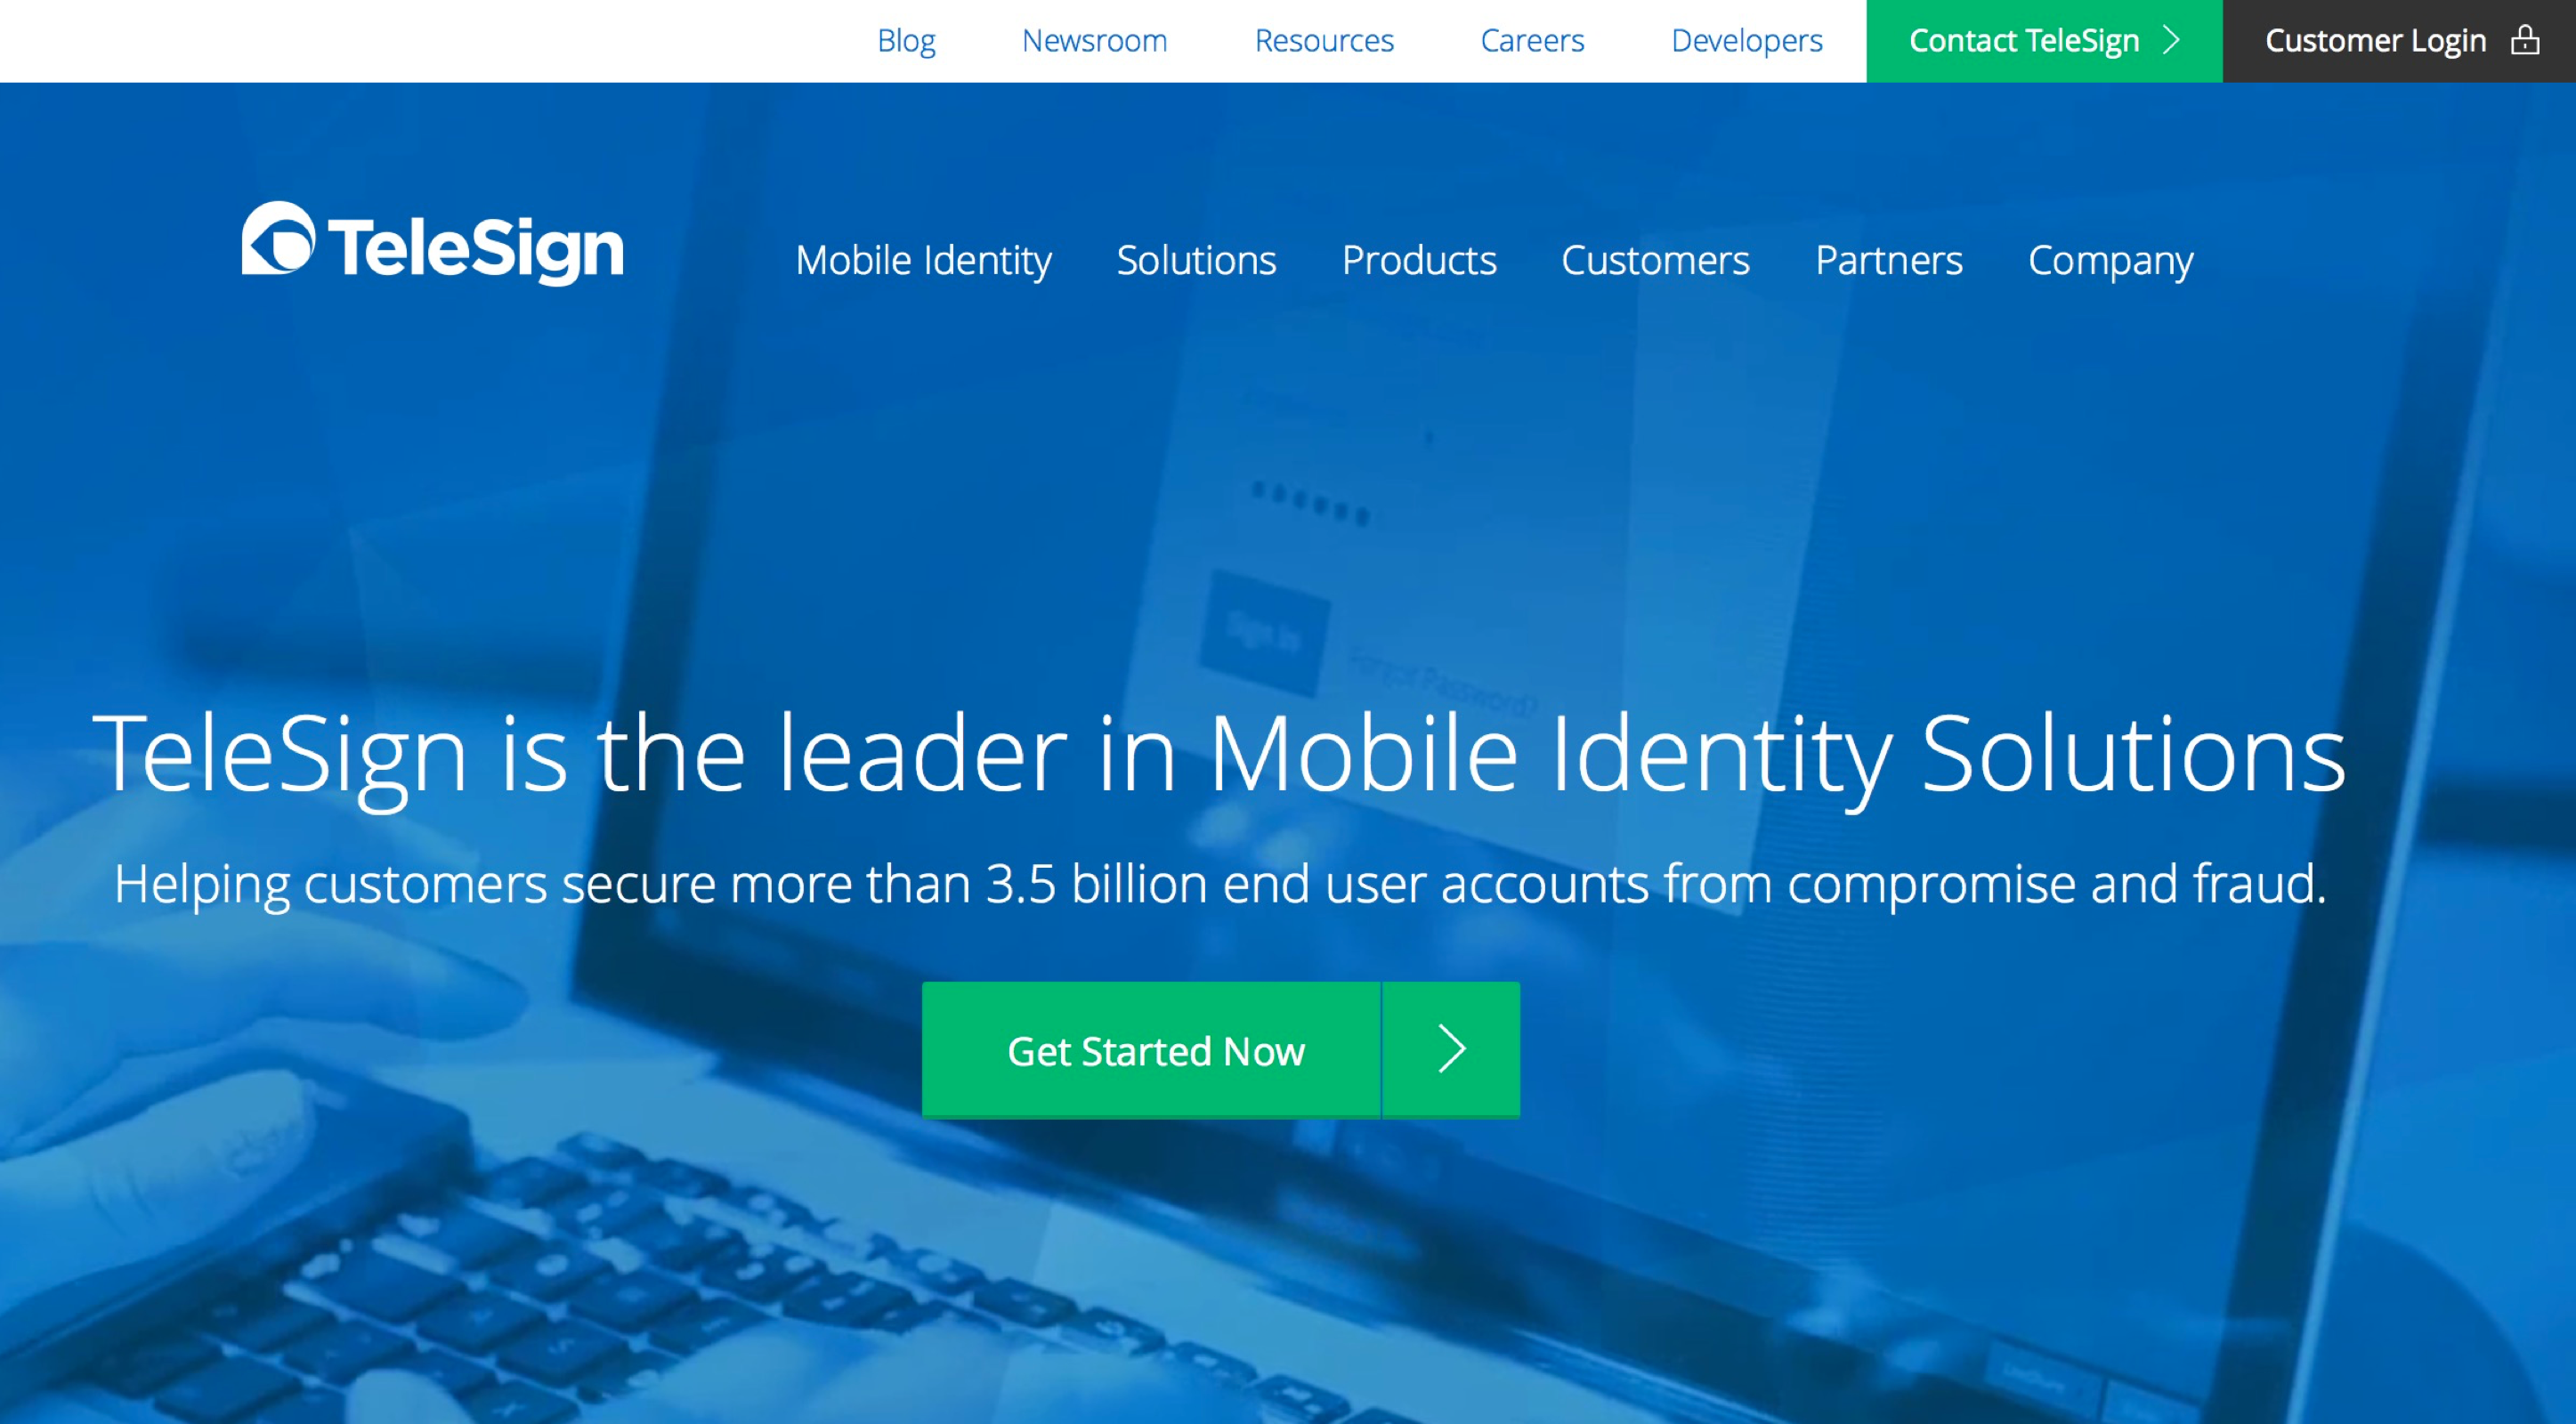 TeleSign - Mobile Identity Solutions